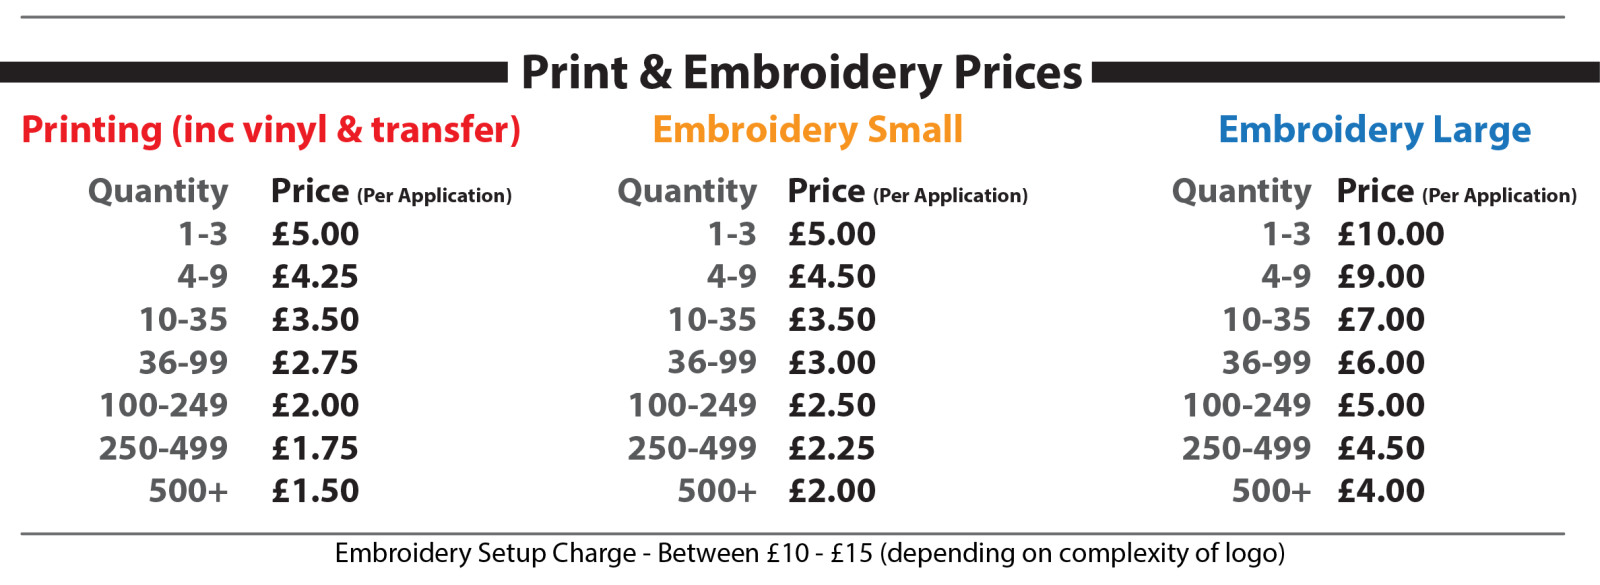 Printing and Embroidery Price List